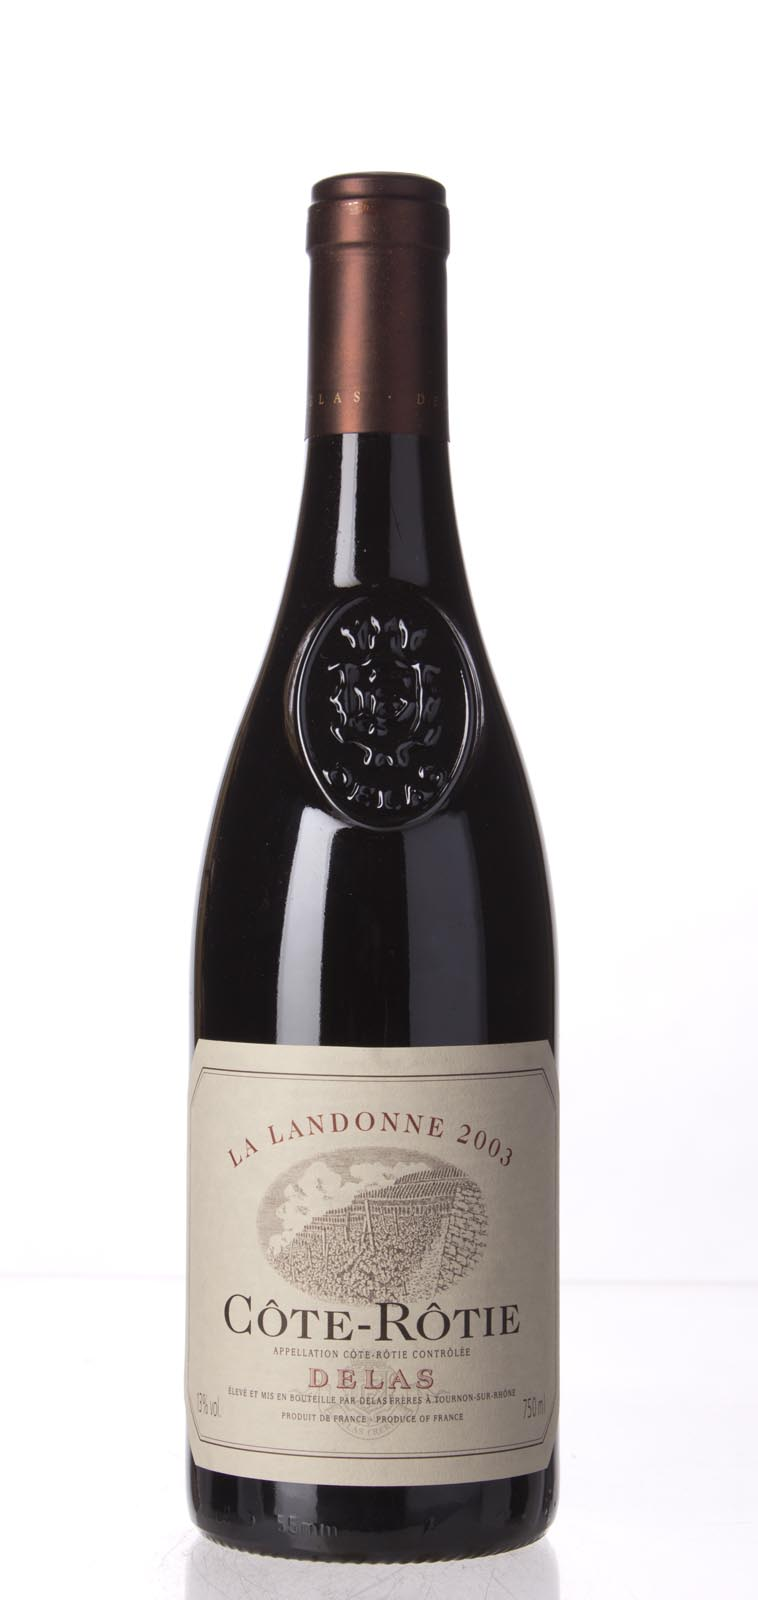 Delas Freres Cote Rotie la Landonne 2003, 750mL (WA96, WS96) from The BPW - Merchants of rare and fine wines.